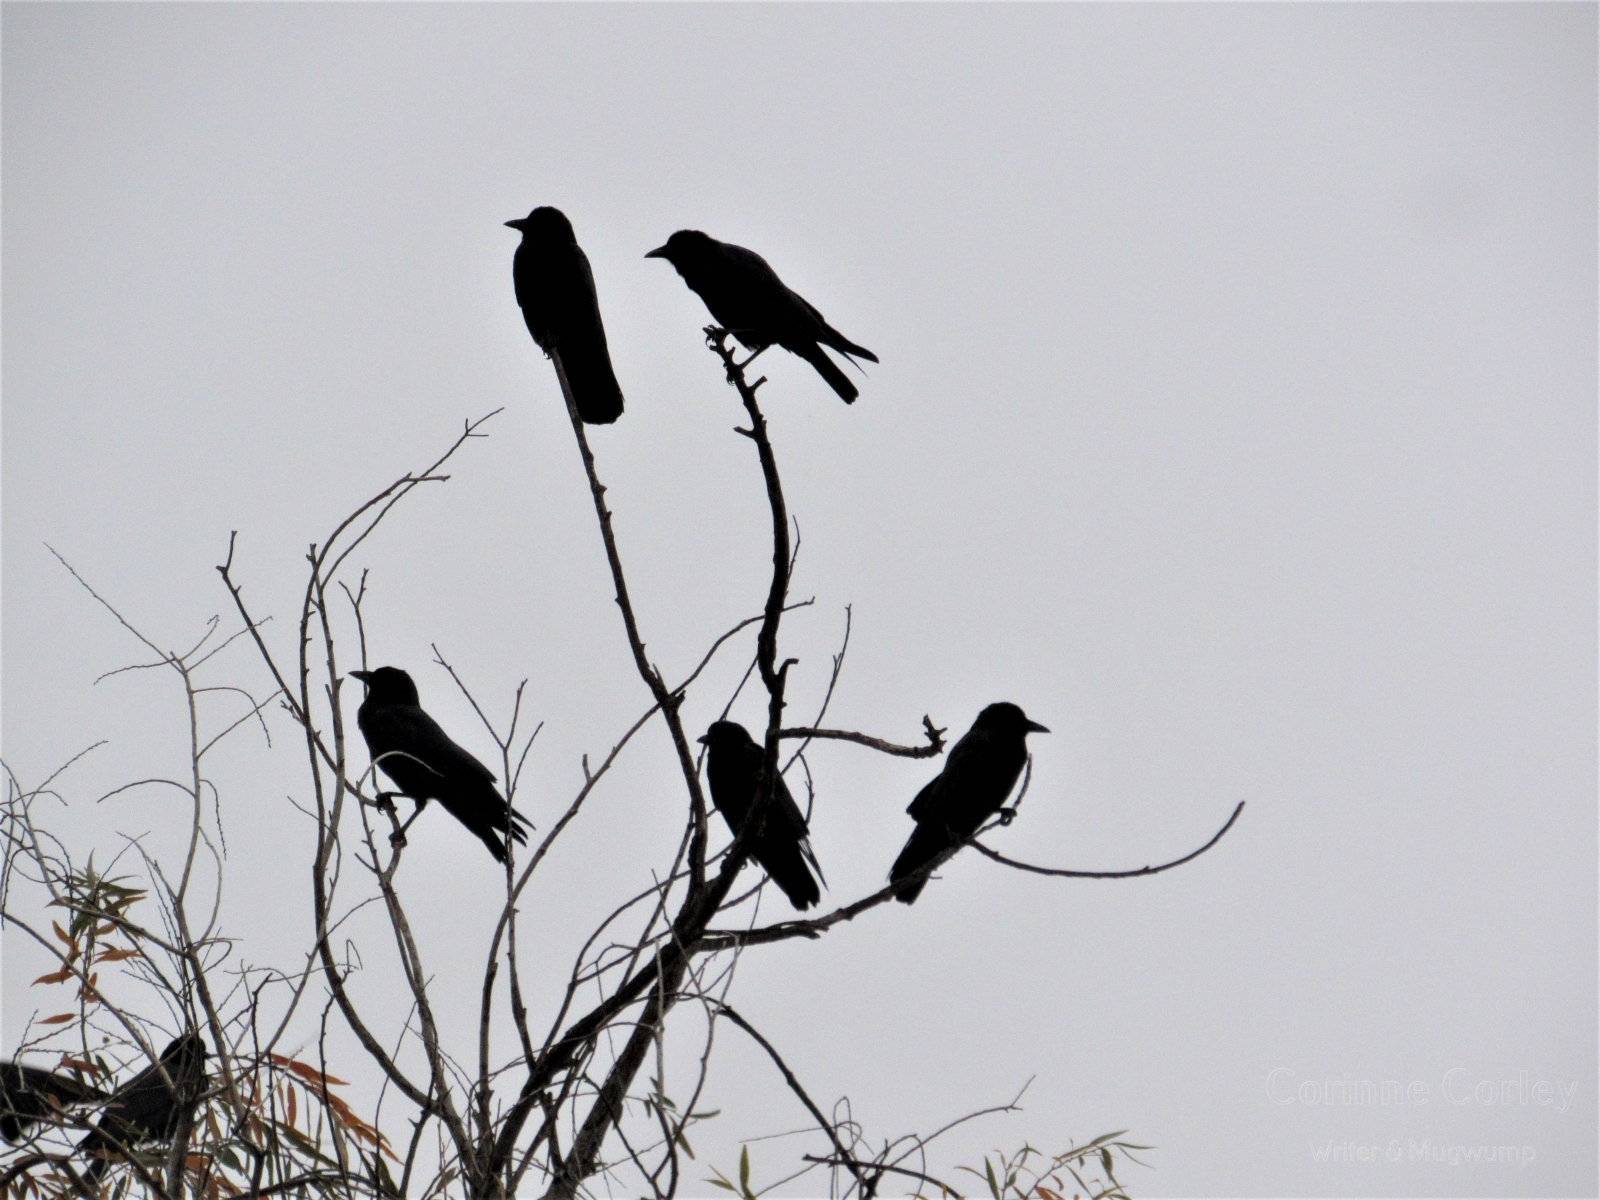 Crows-19